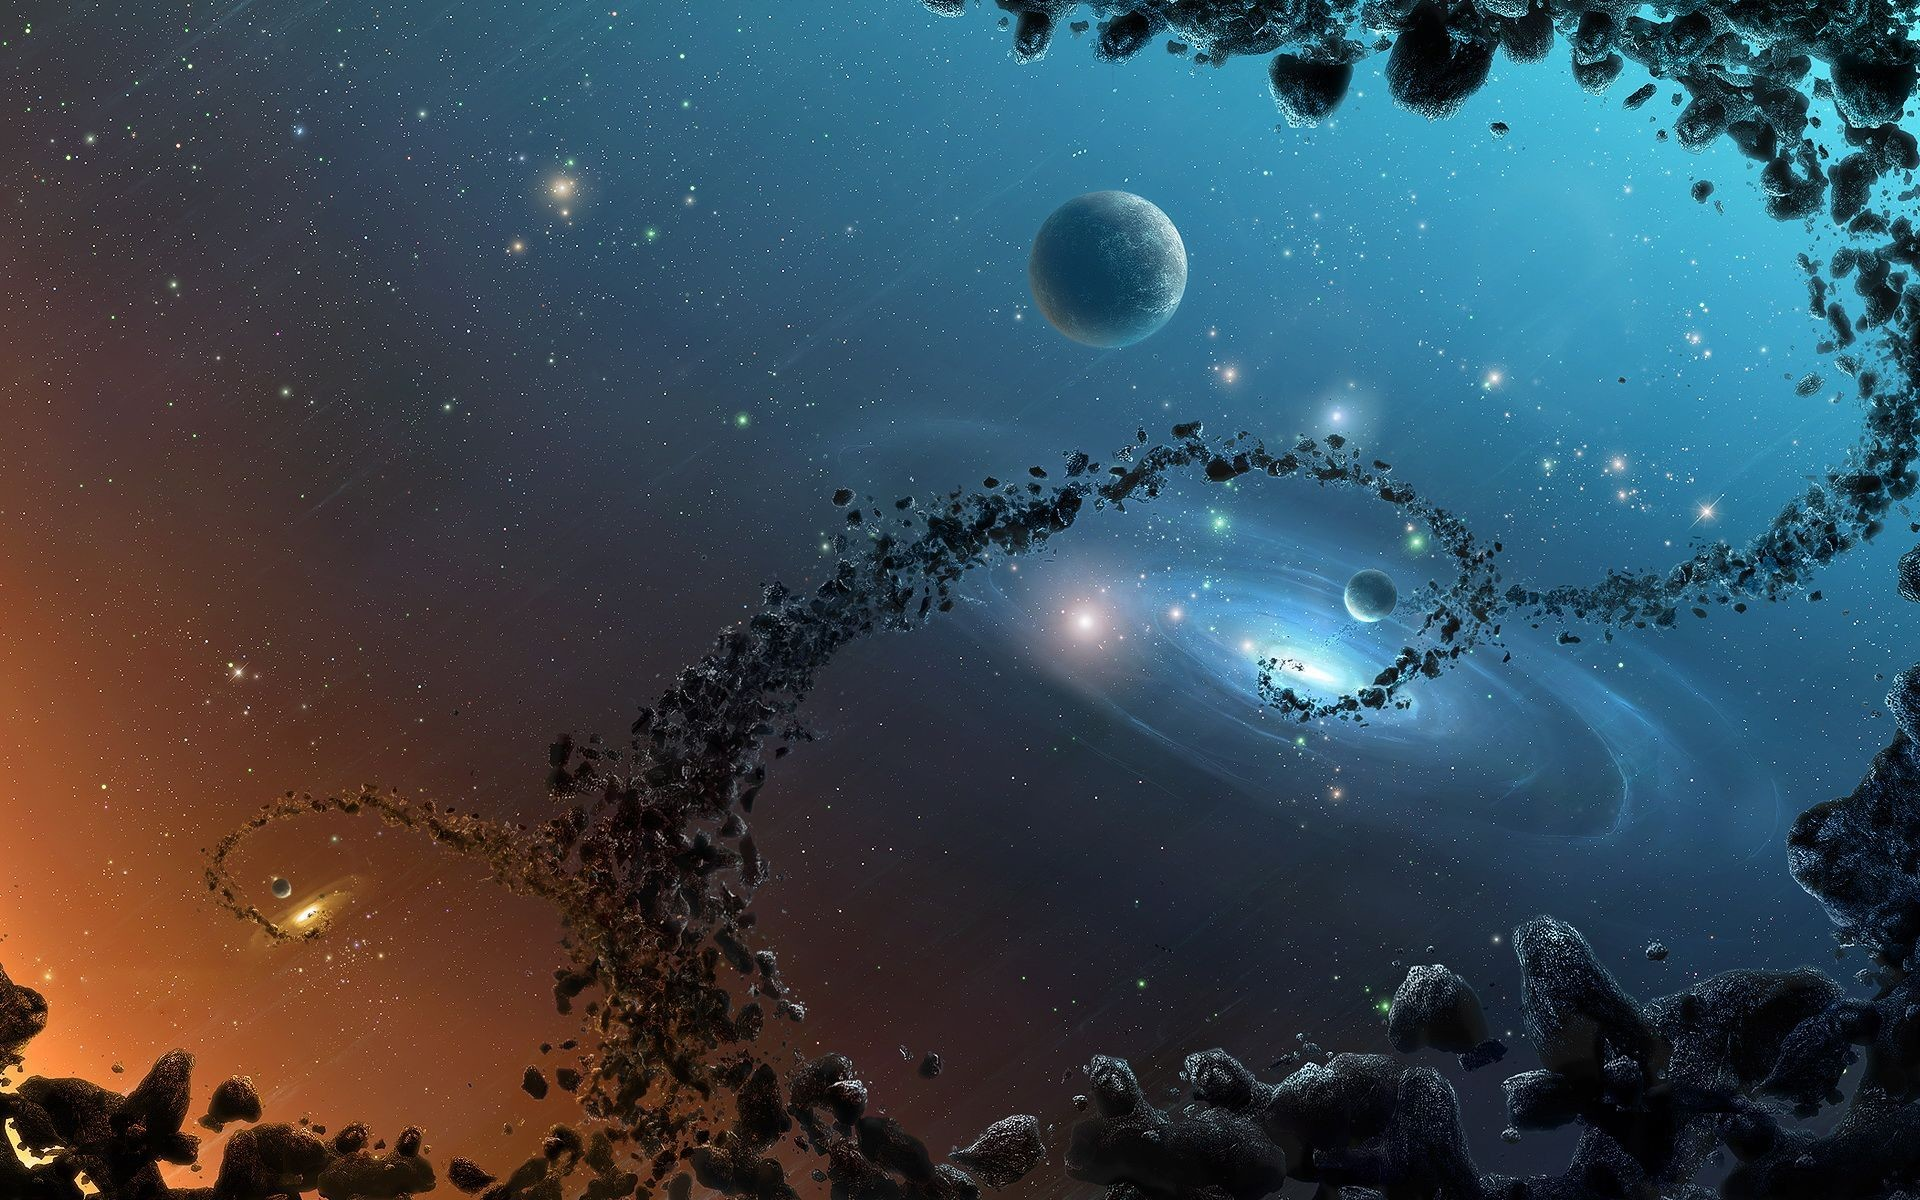 universe wallpaper hd ·①